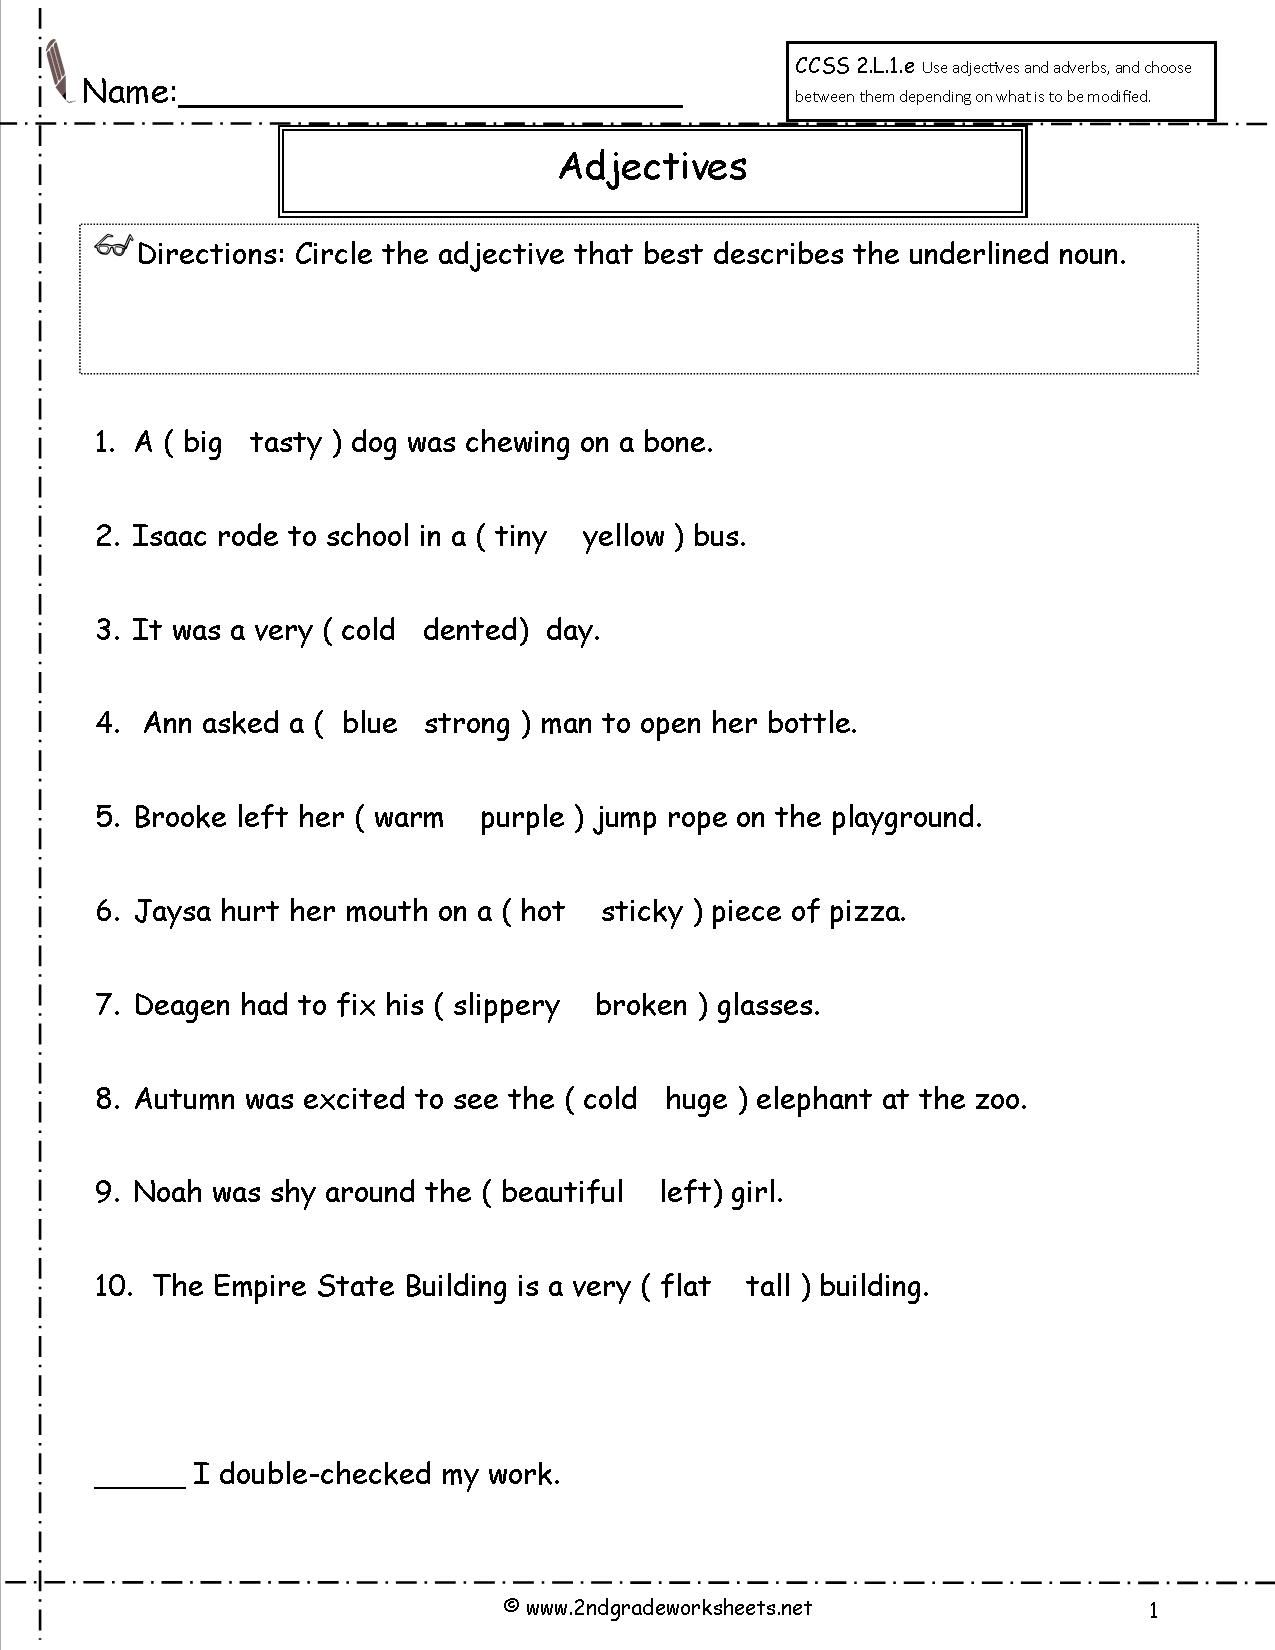 Adjectives Worksheet With Images Grammar Worksheets